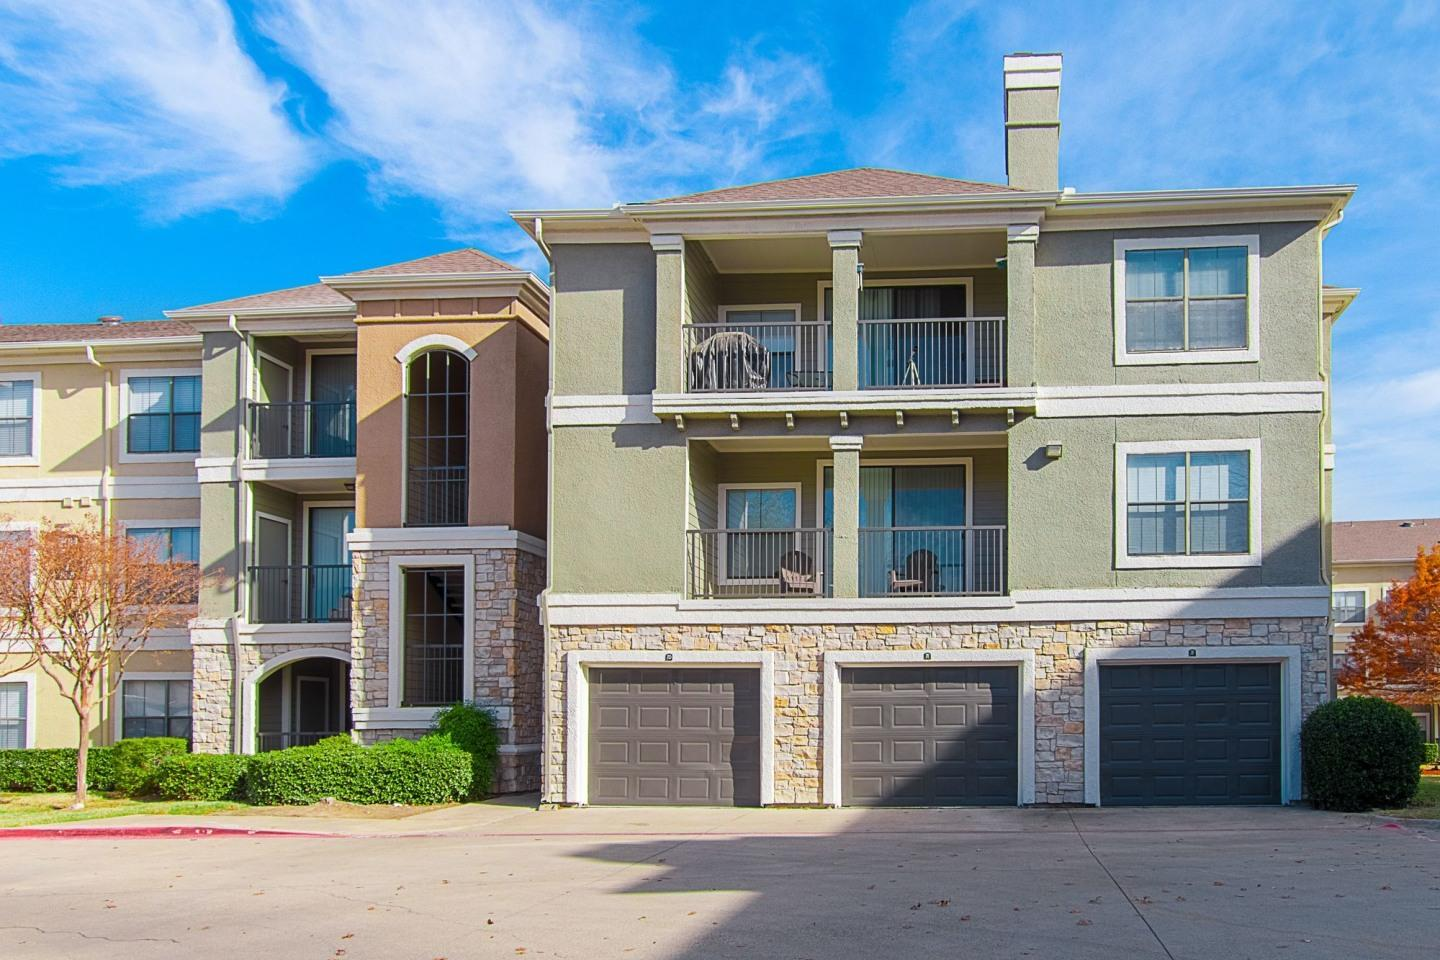 Franciscan of arlington apartments arlington tx walk score One bedroom apartments in arlington tx